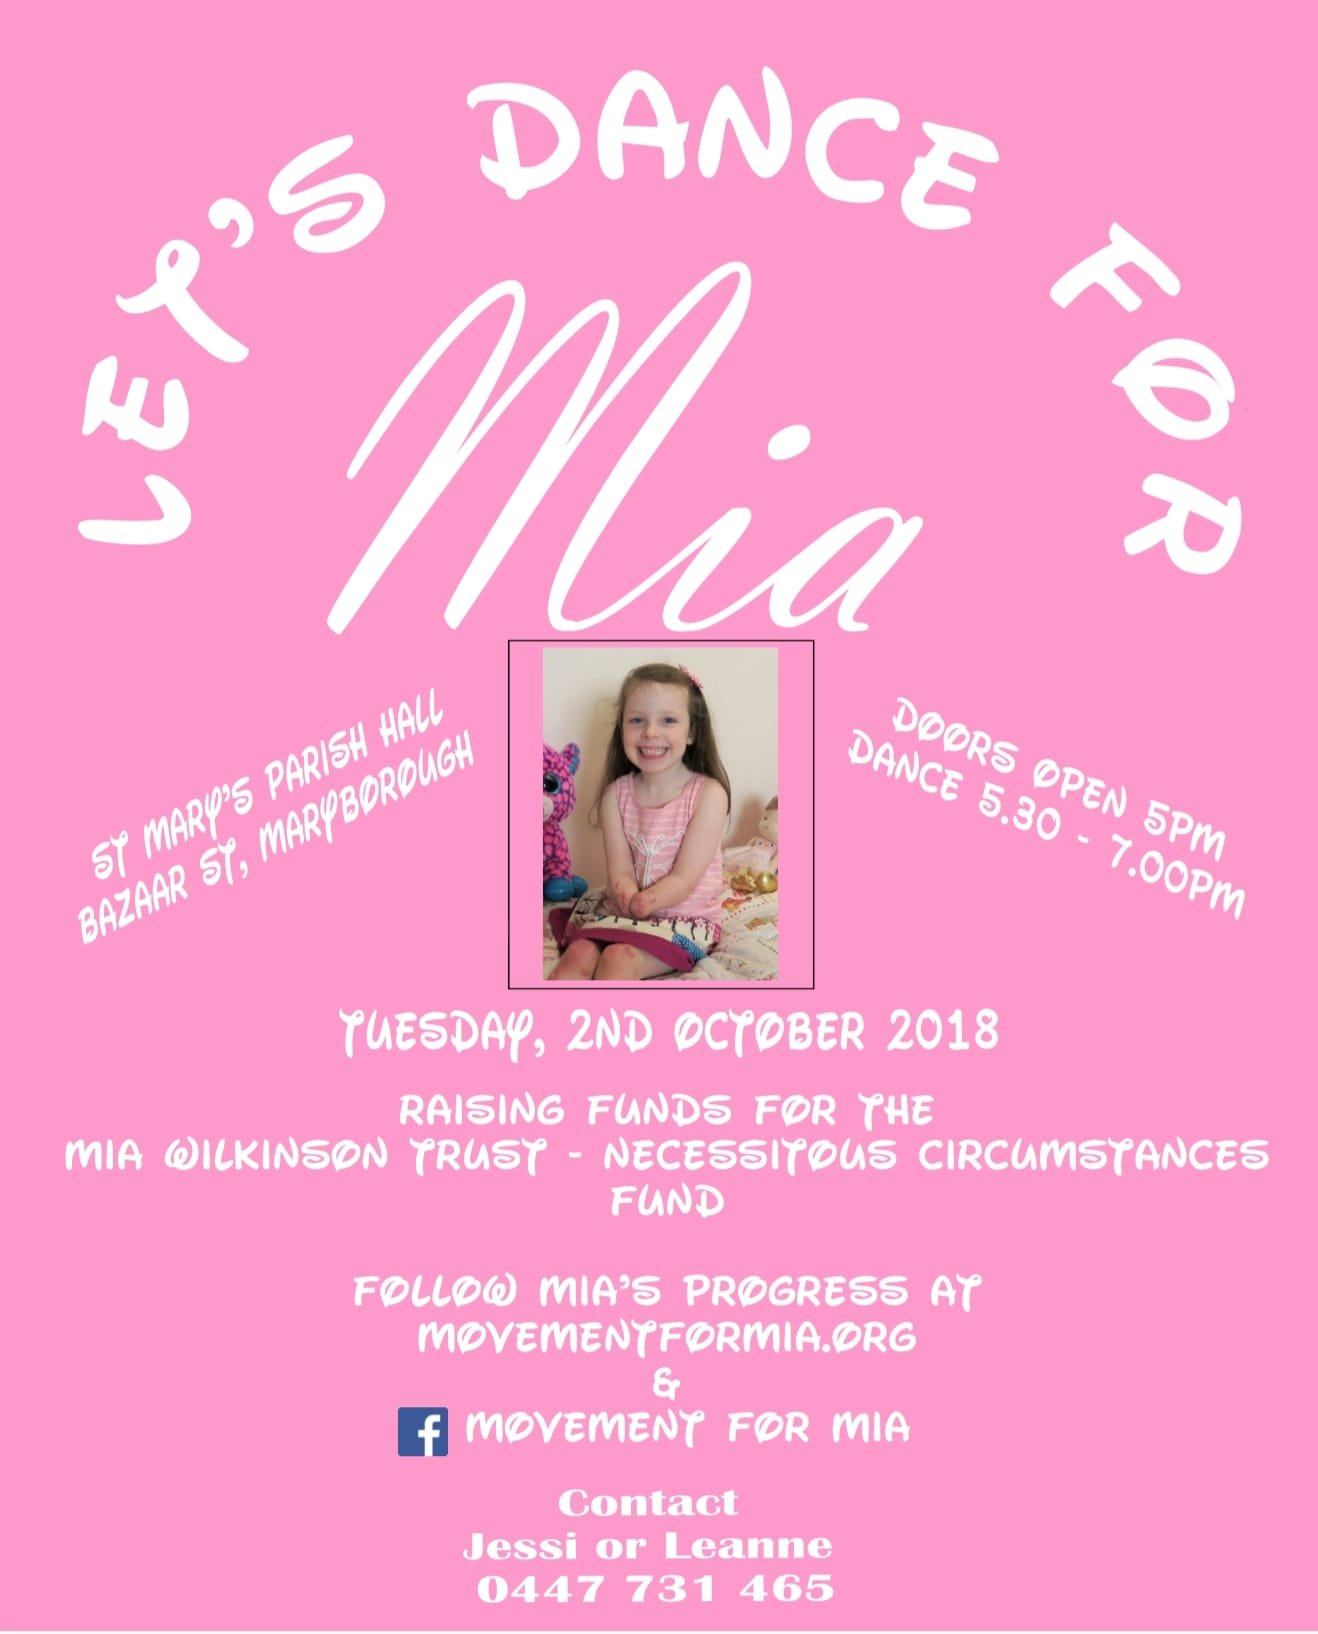 Let's Dance For Mia